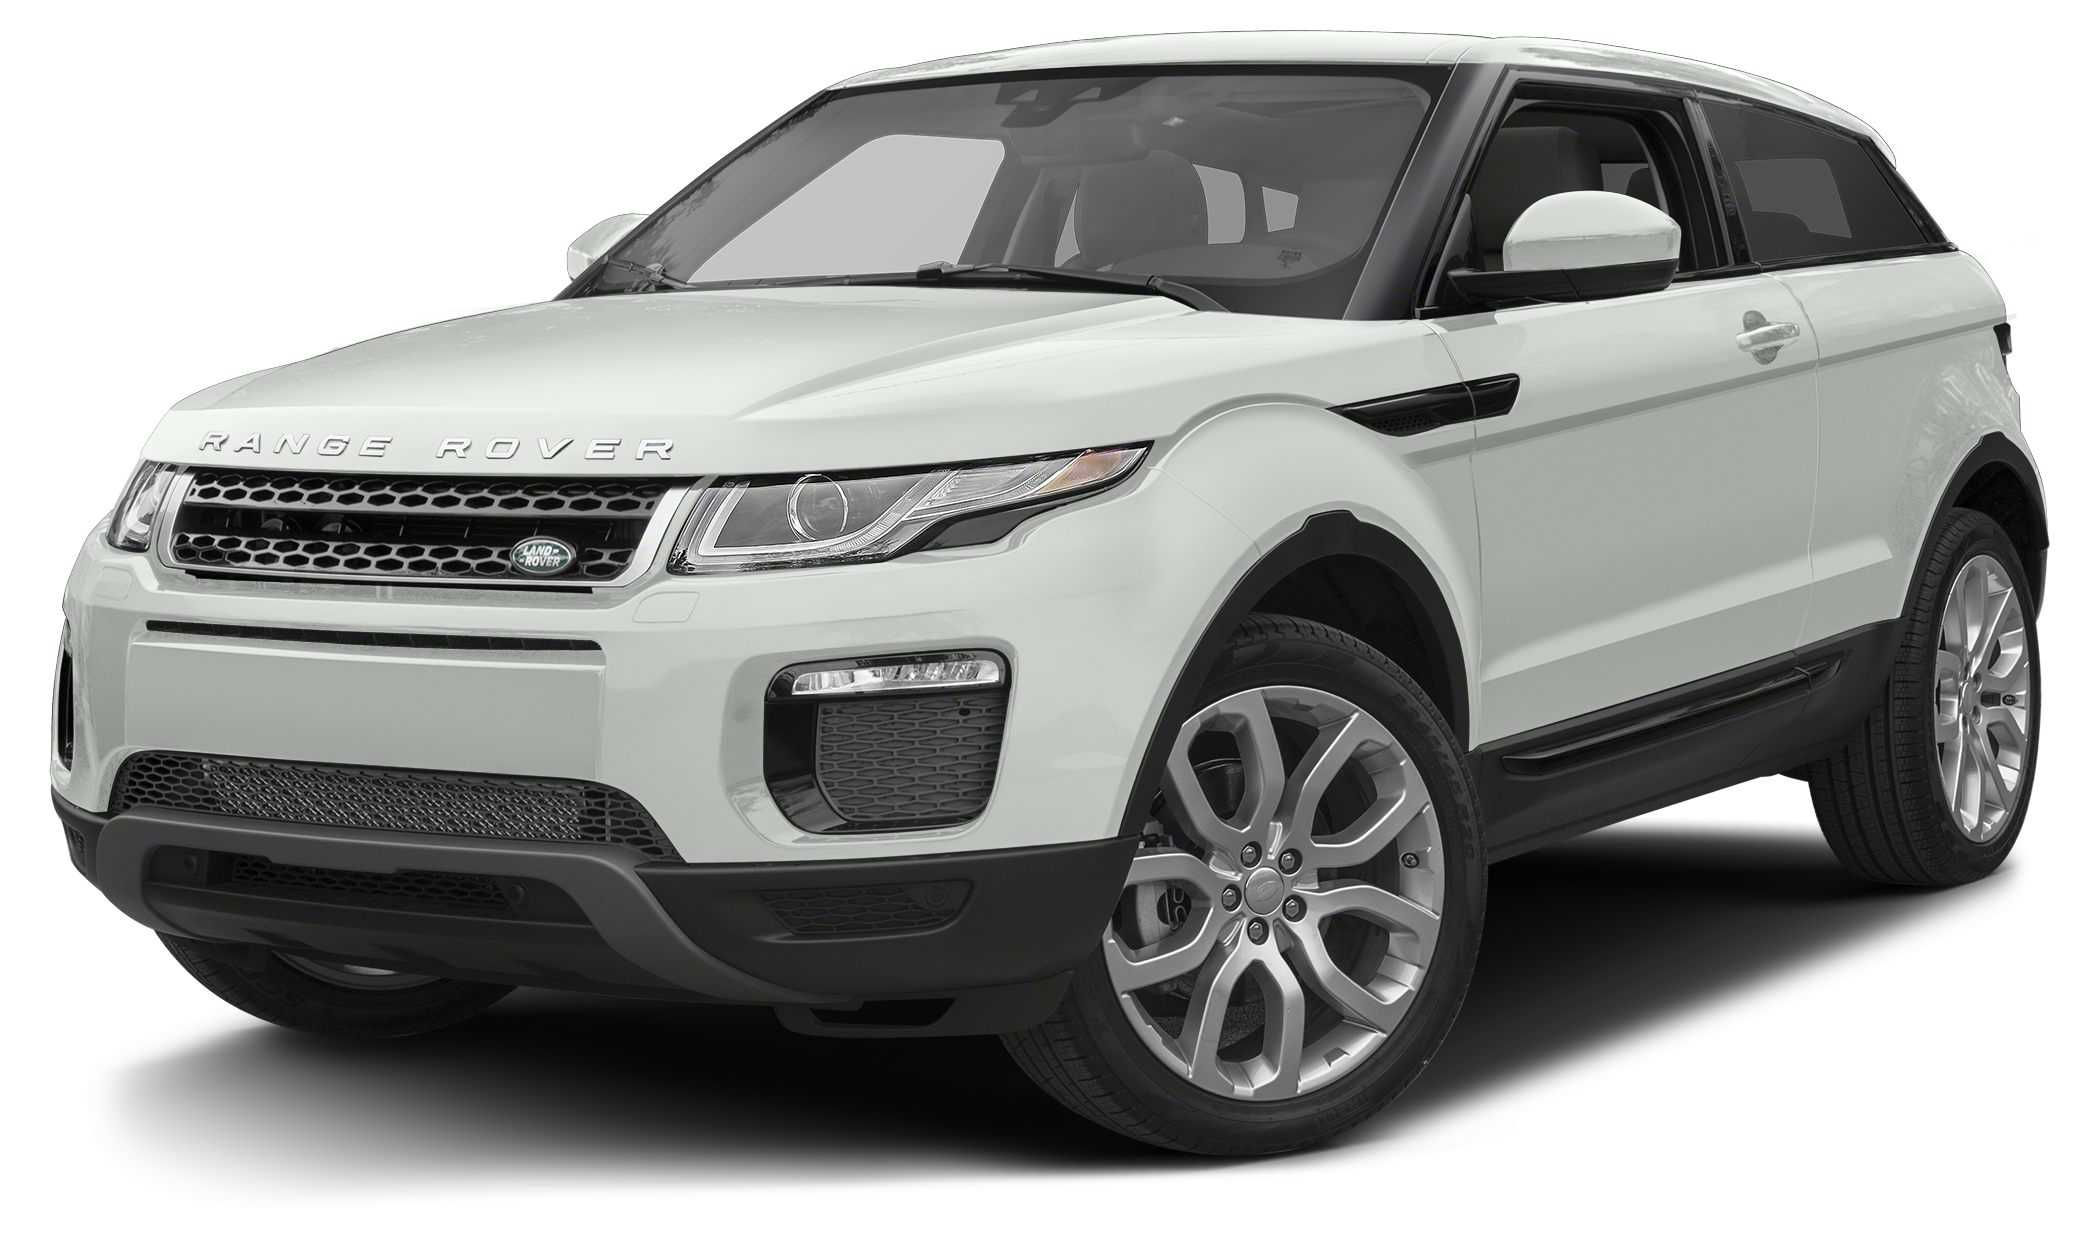 2017 land rover range rover evoque for sale in pasadena. Black Bedroom Furniture Sets. Home Design Ideas